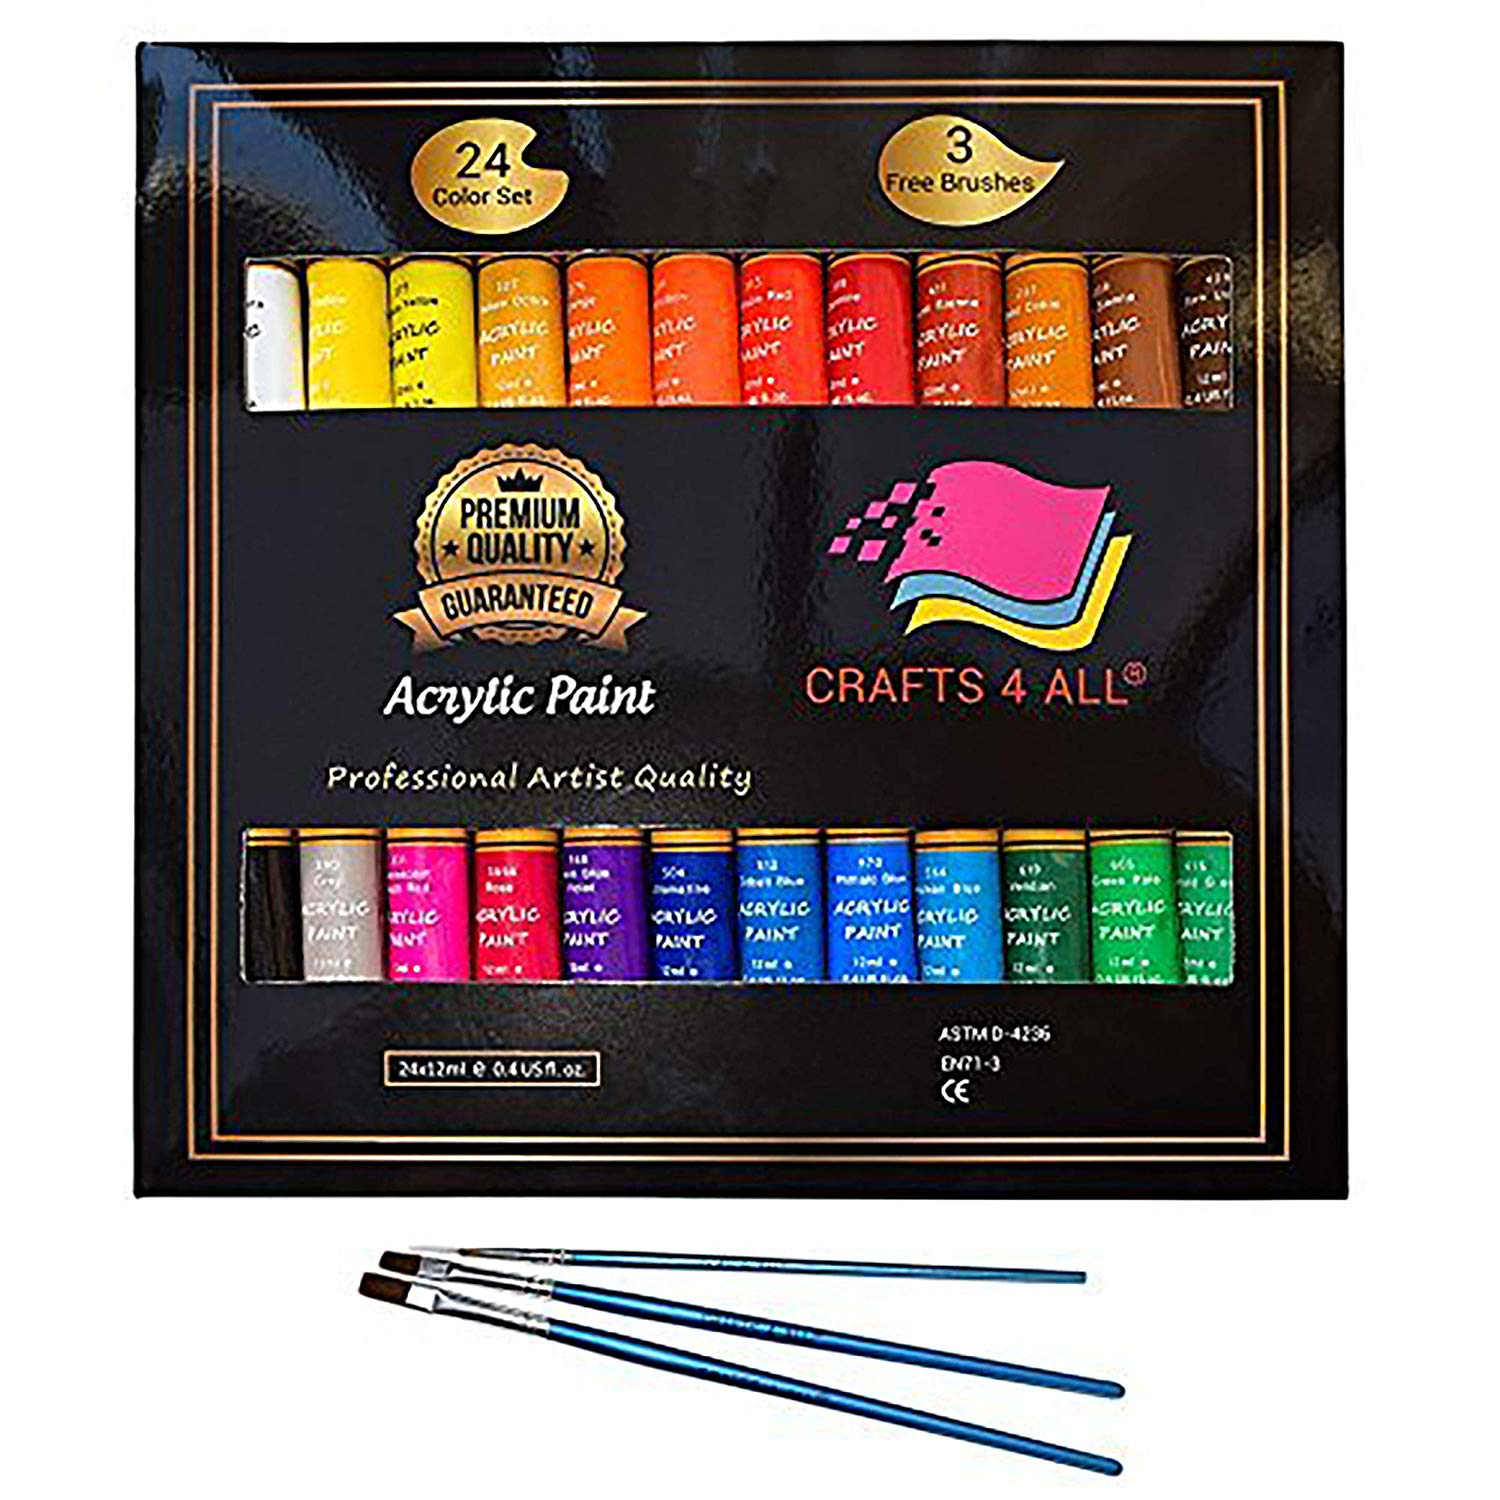 Crafts 4 All 24 count acrylic paint